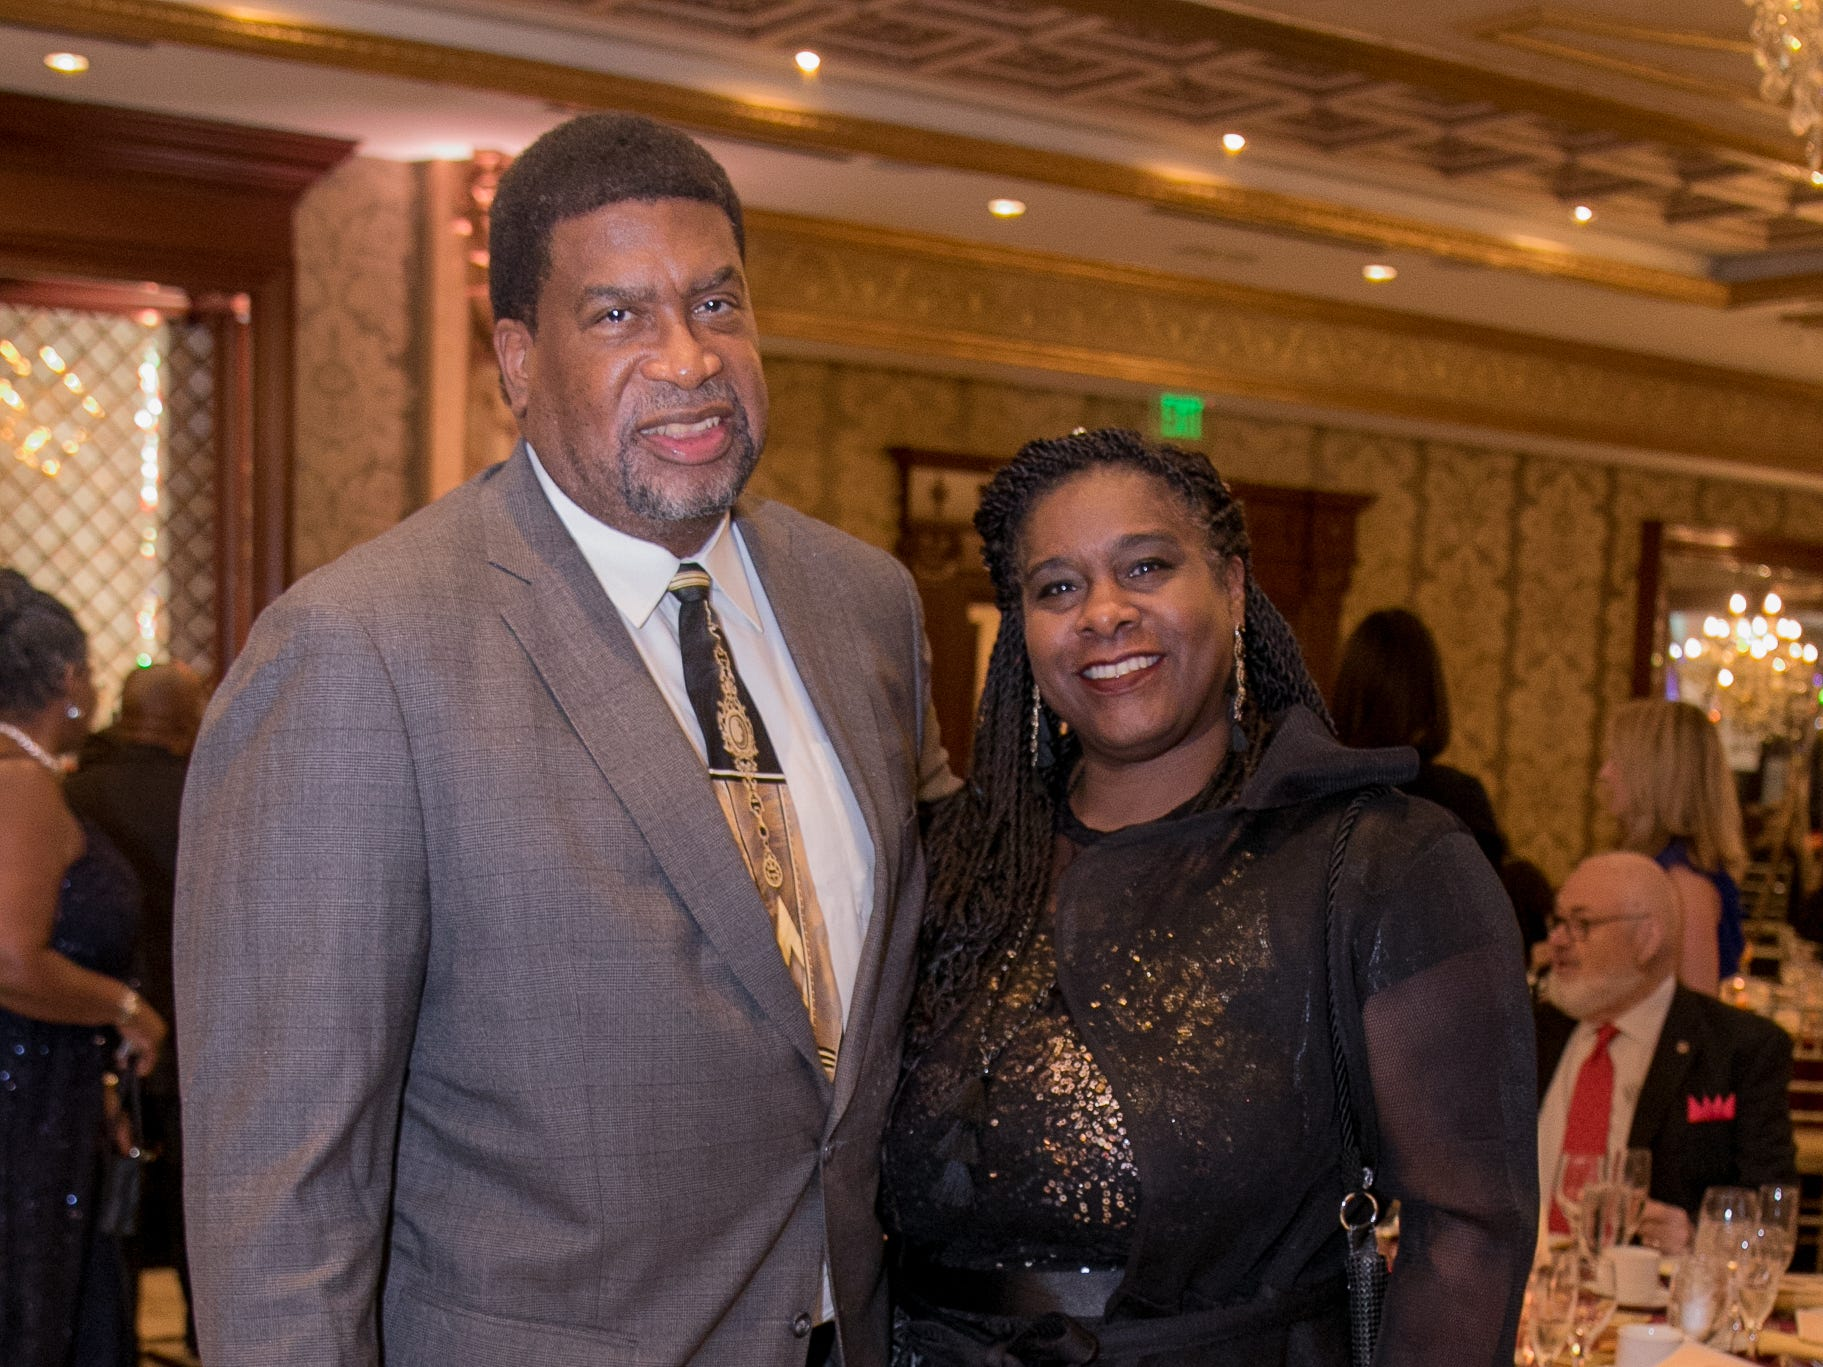 Dr. Michael, Dr. Sharon Mason-Bell. Youth Consultation Service – YCS held their 100th Anniversary Celebration at Seasons in Washington Township.11/5/2018